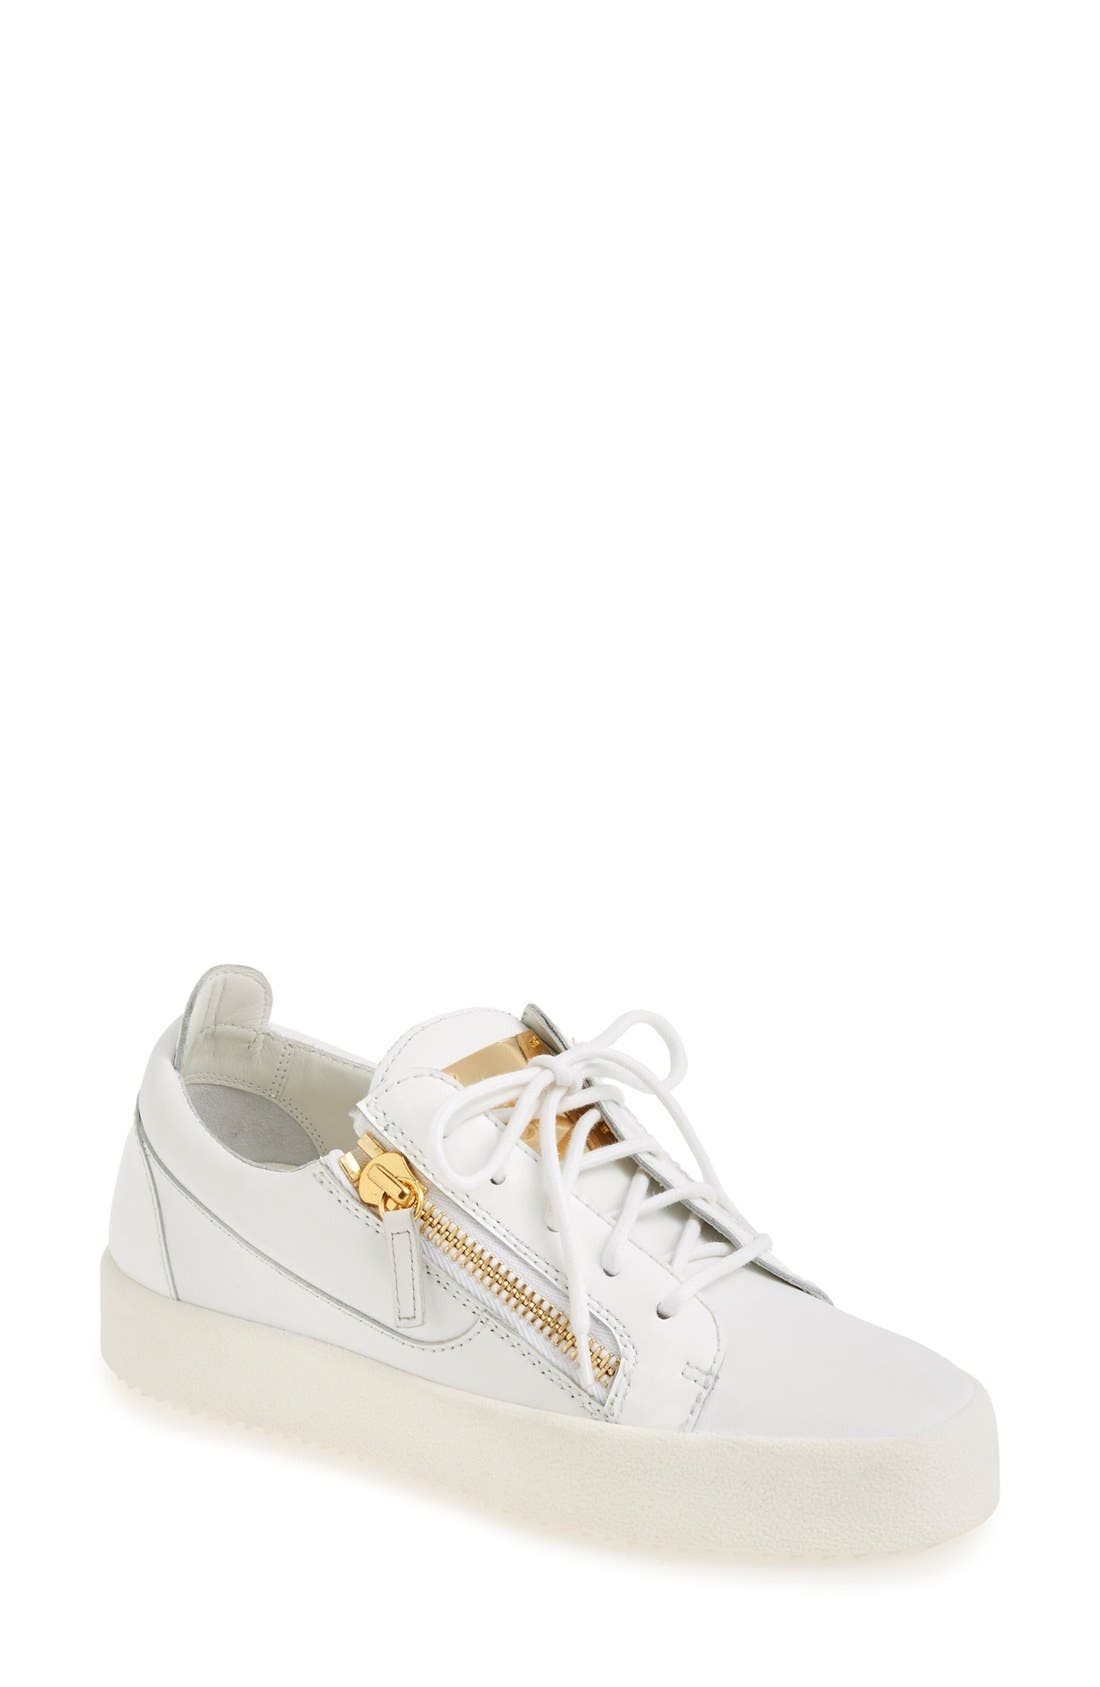 GIUSEPPE ZANOTTI 'May London' Snake Embossed Low Top